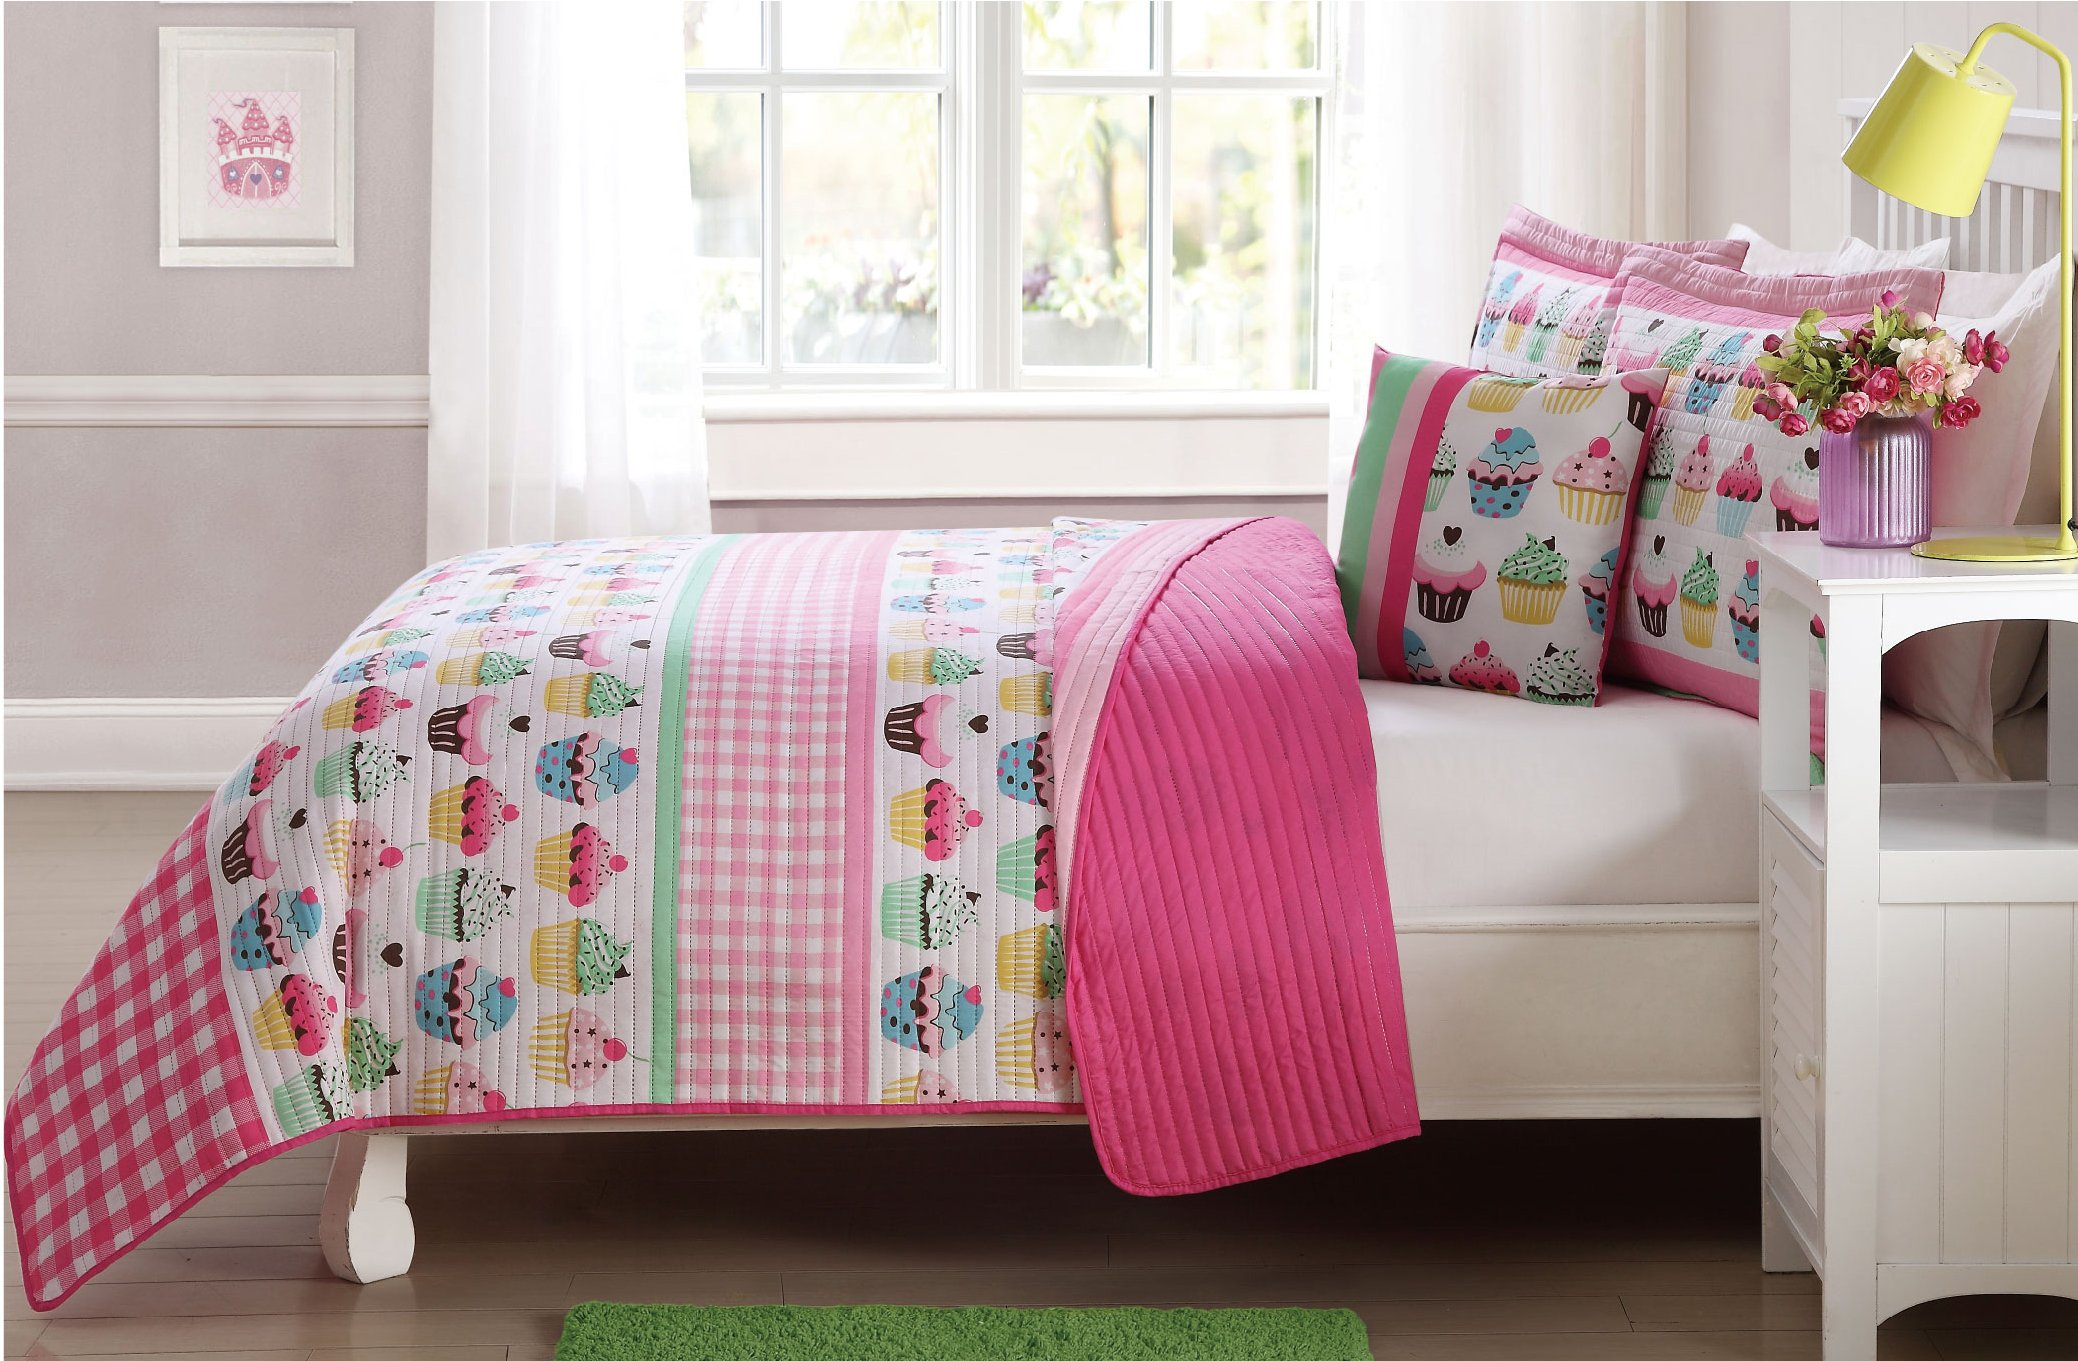 Elegant Home Cupcakes Striped Multicolors Pink White Green Blue Cozy Colorful 3 Piece Quilt Bedspread Set Decorative Pillow Kids/Girls # Cupcake (Twin Size)